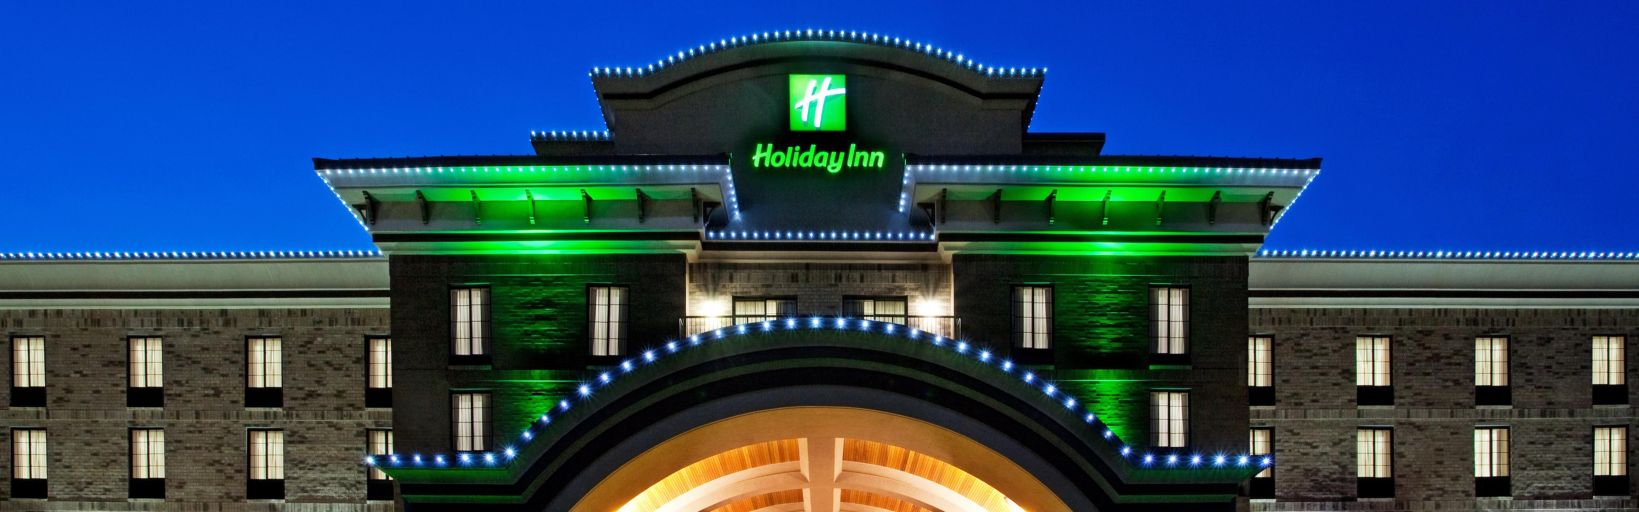 Front Desk Holiday Inn Of Midland Hotel Exterior